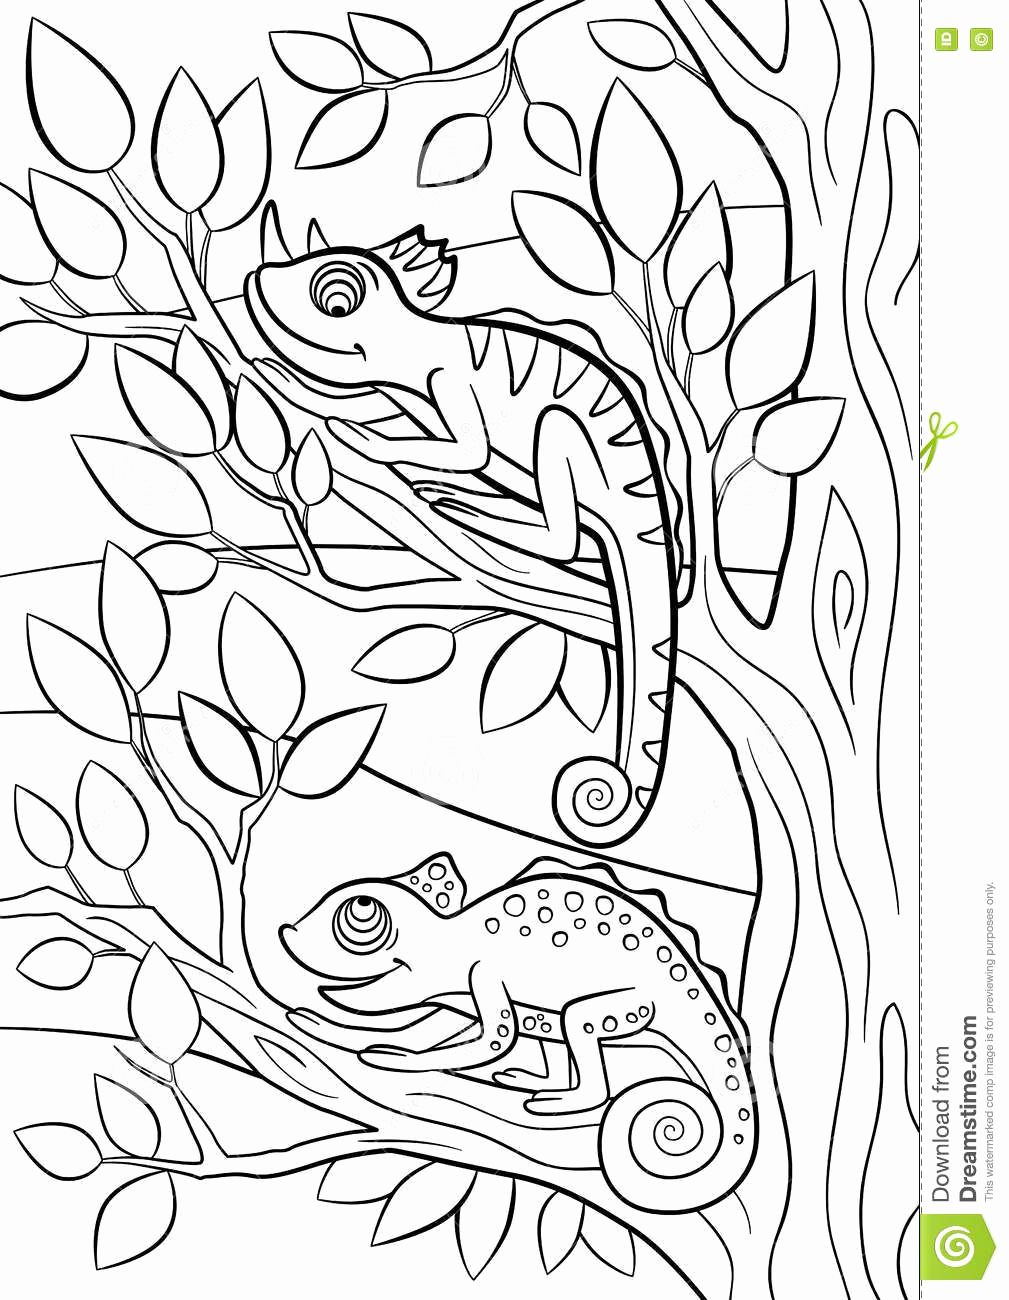 Animal Coloring Book Pages Inspirational Coloring Pages